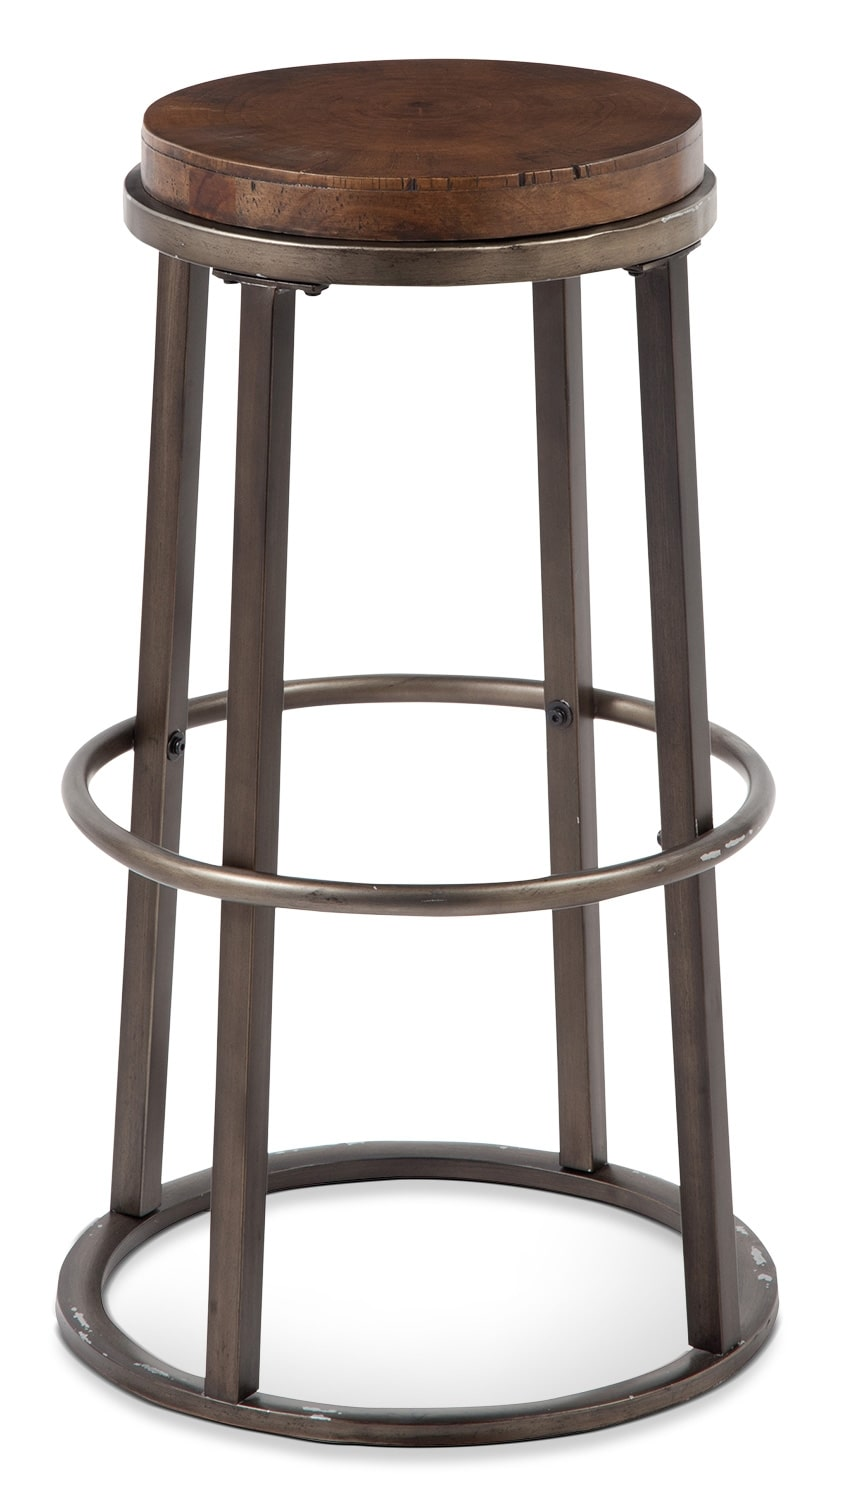 "Dining Room Furniture - Glosco 30"" Round Bar Stool"